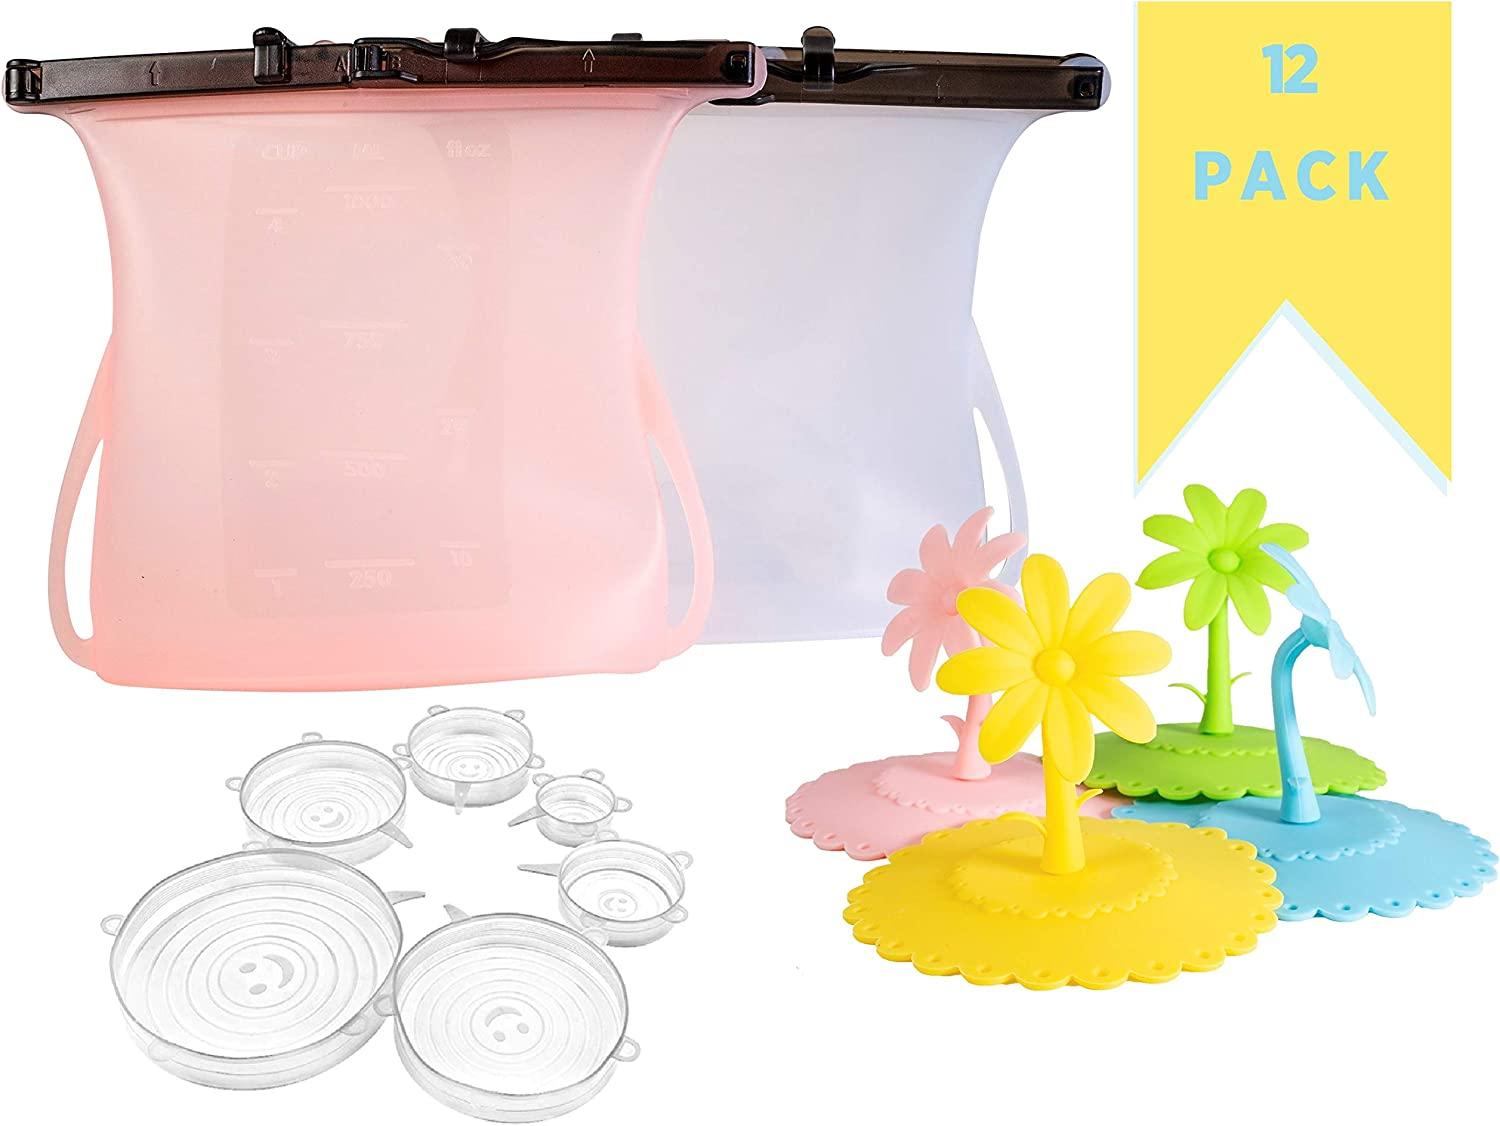 12 Piece Set Eco Friendly KitchenItems. (2) Reusable Silicone Food Storage Bags, Leak-Proof, Stand-Up, Airtight, Microwave to Freezer Plus (6) Silicone Stretch Lids Plus (4) Cup Covers.